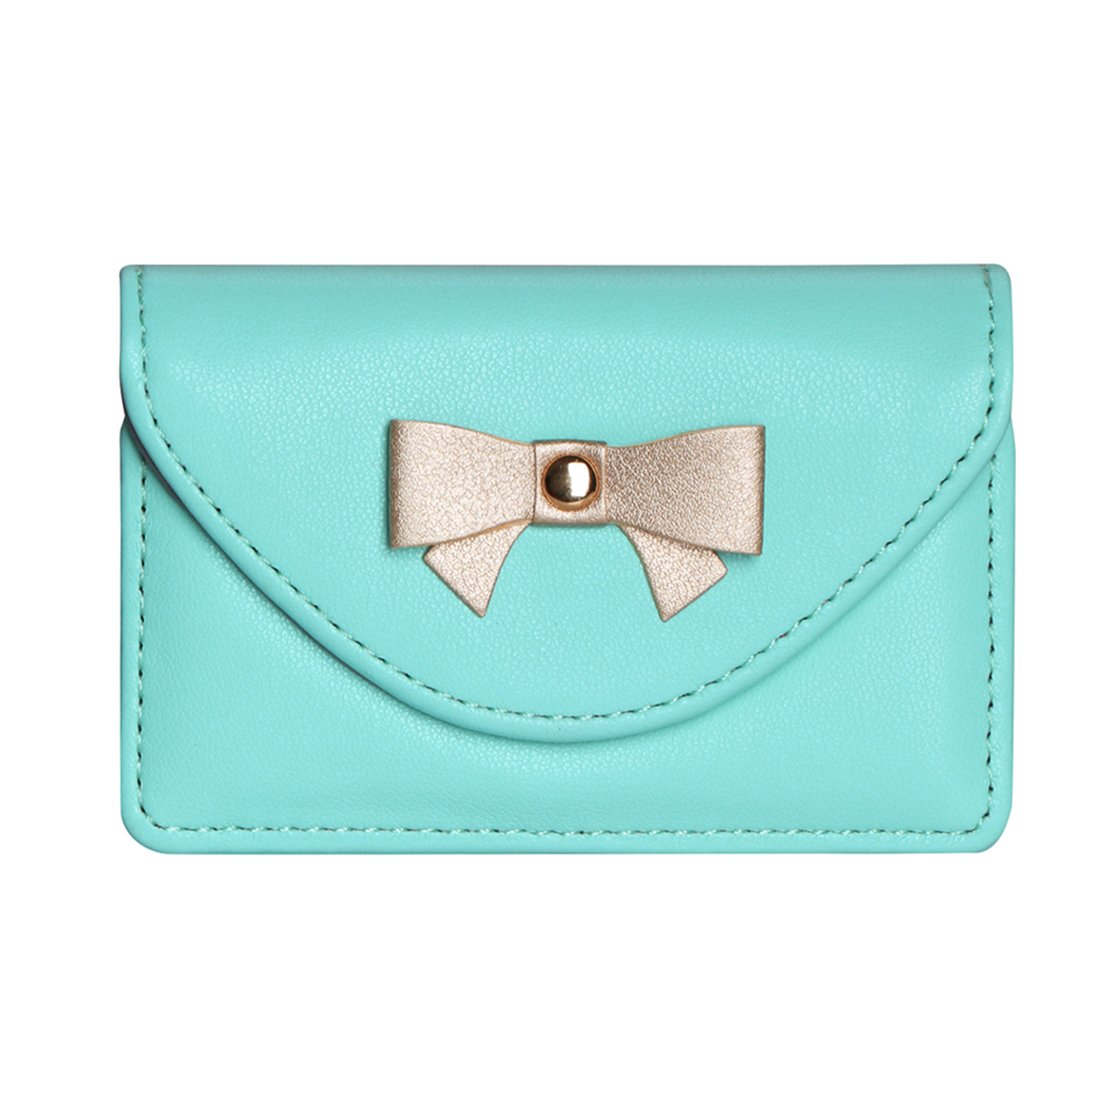 FYY 100% Handmade Premium Leather Business Name Card Case Universal Card Holder with Magnetic Closure (Hold 30 pics of cards) Mint Green